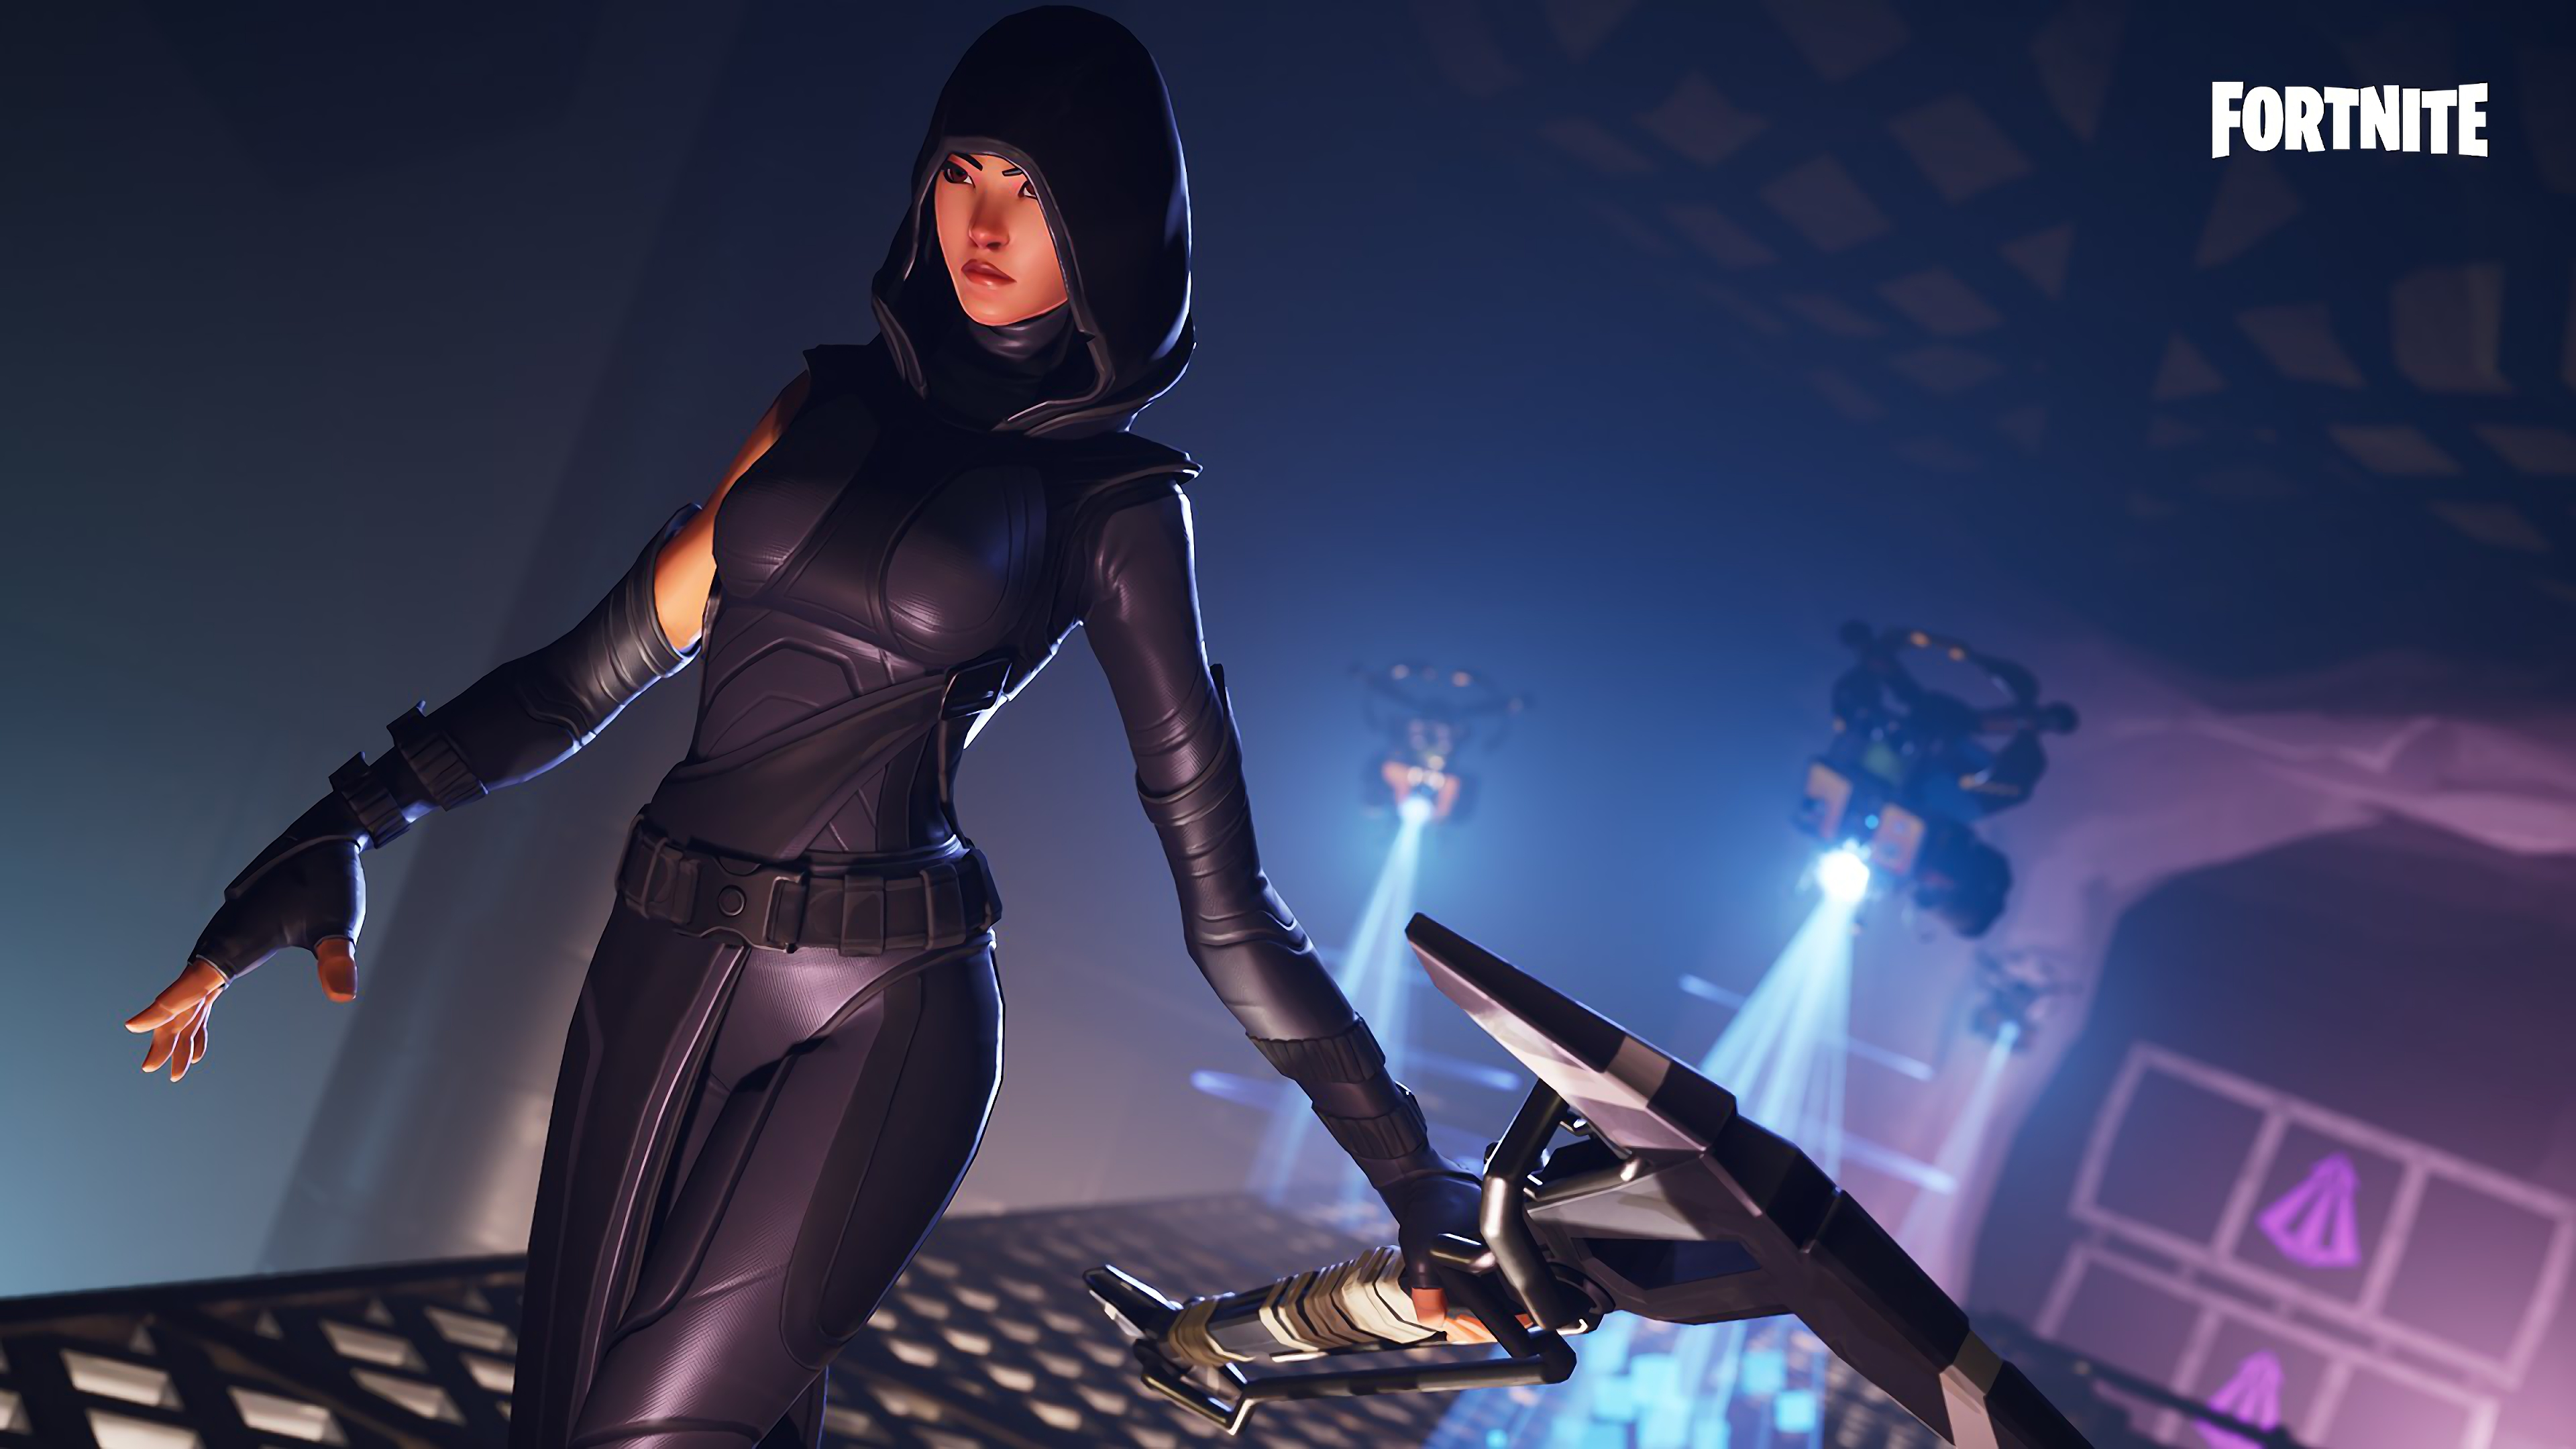 Fate Fortnite Skin Wallpaper 4k Ultra Hd Id3100